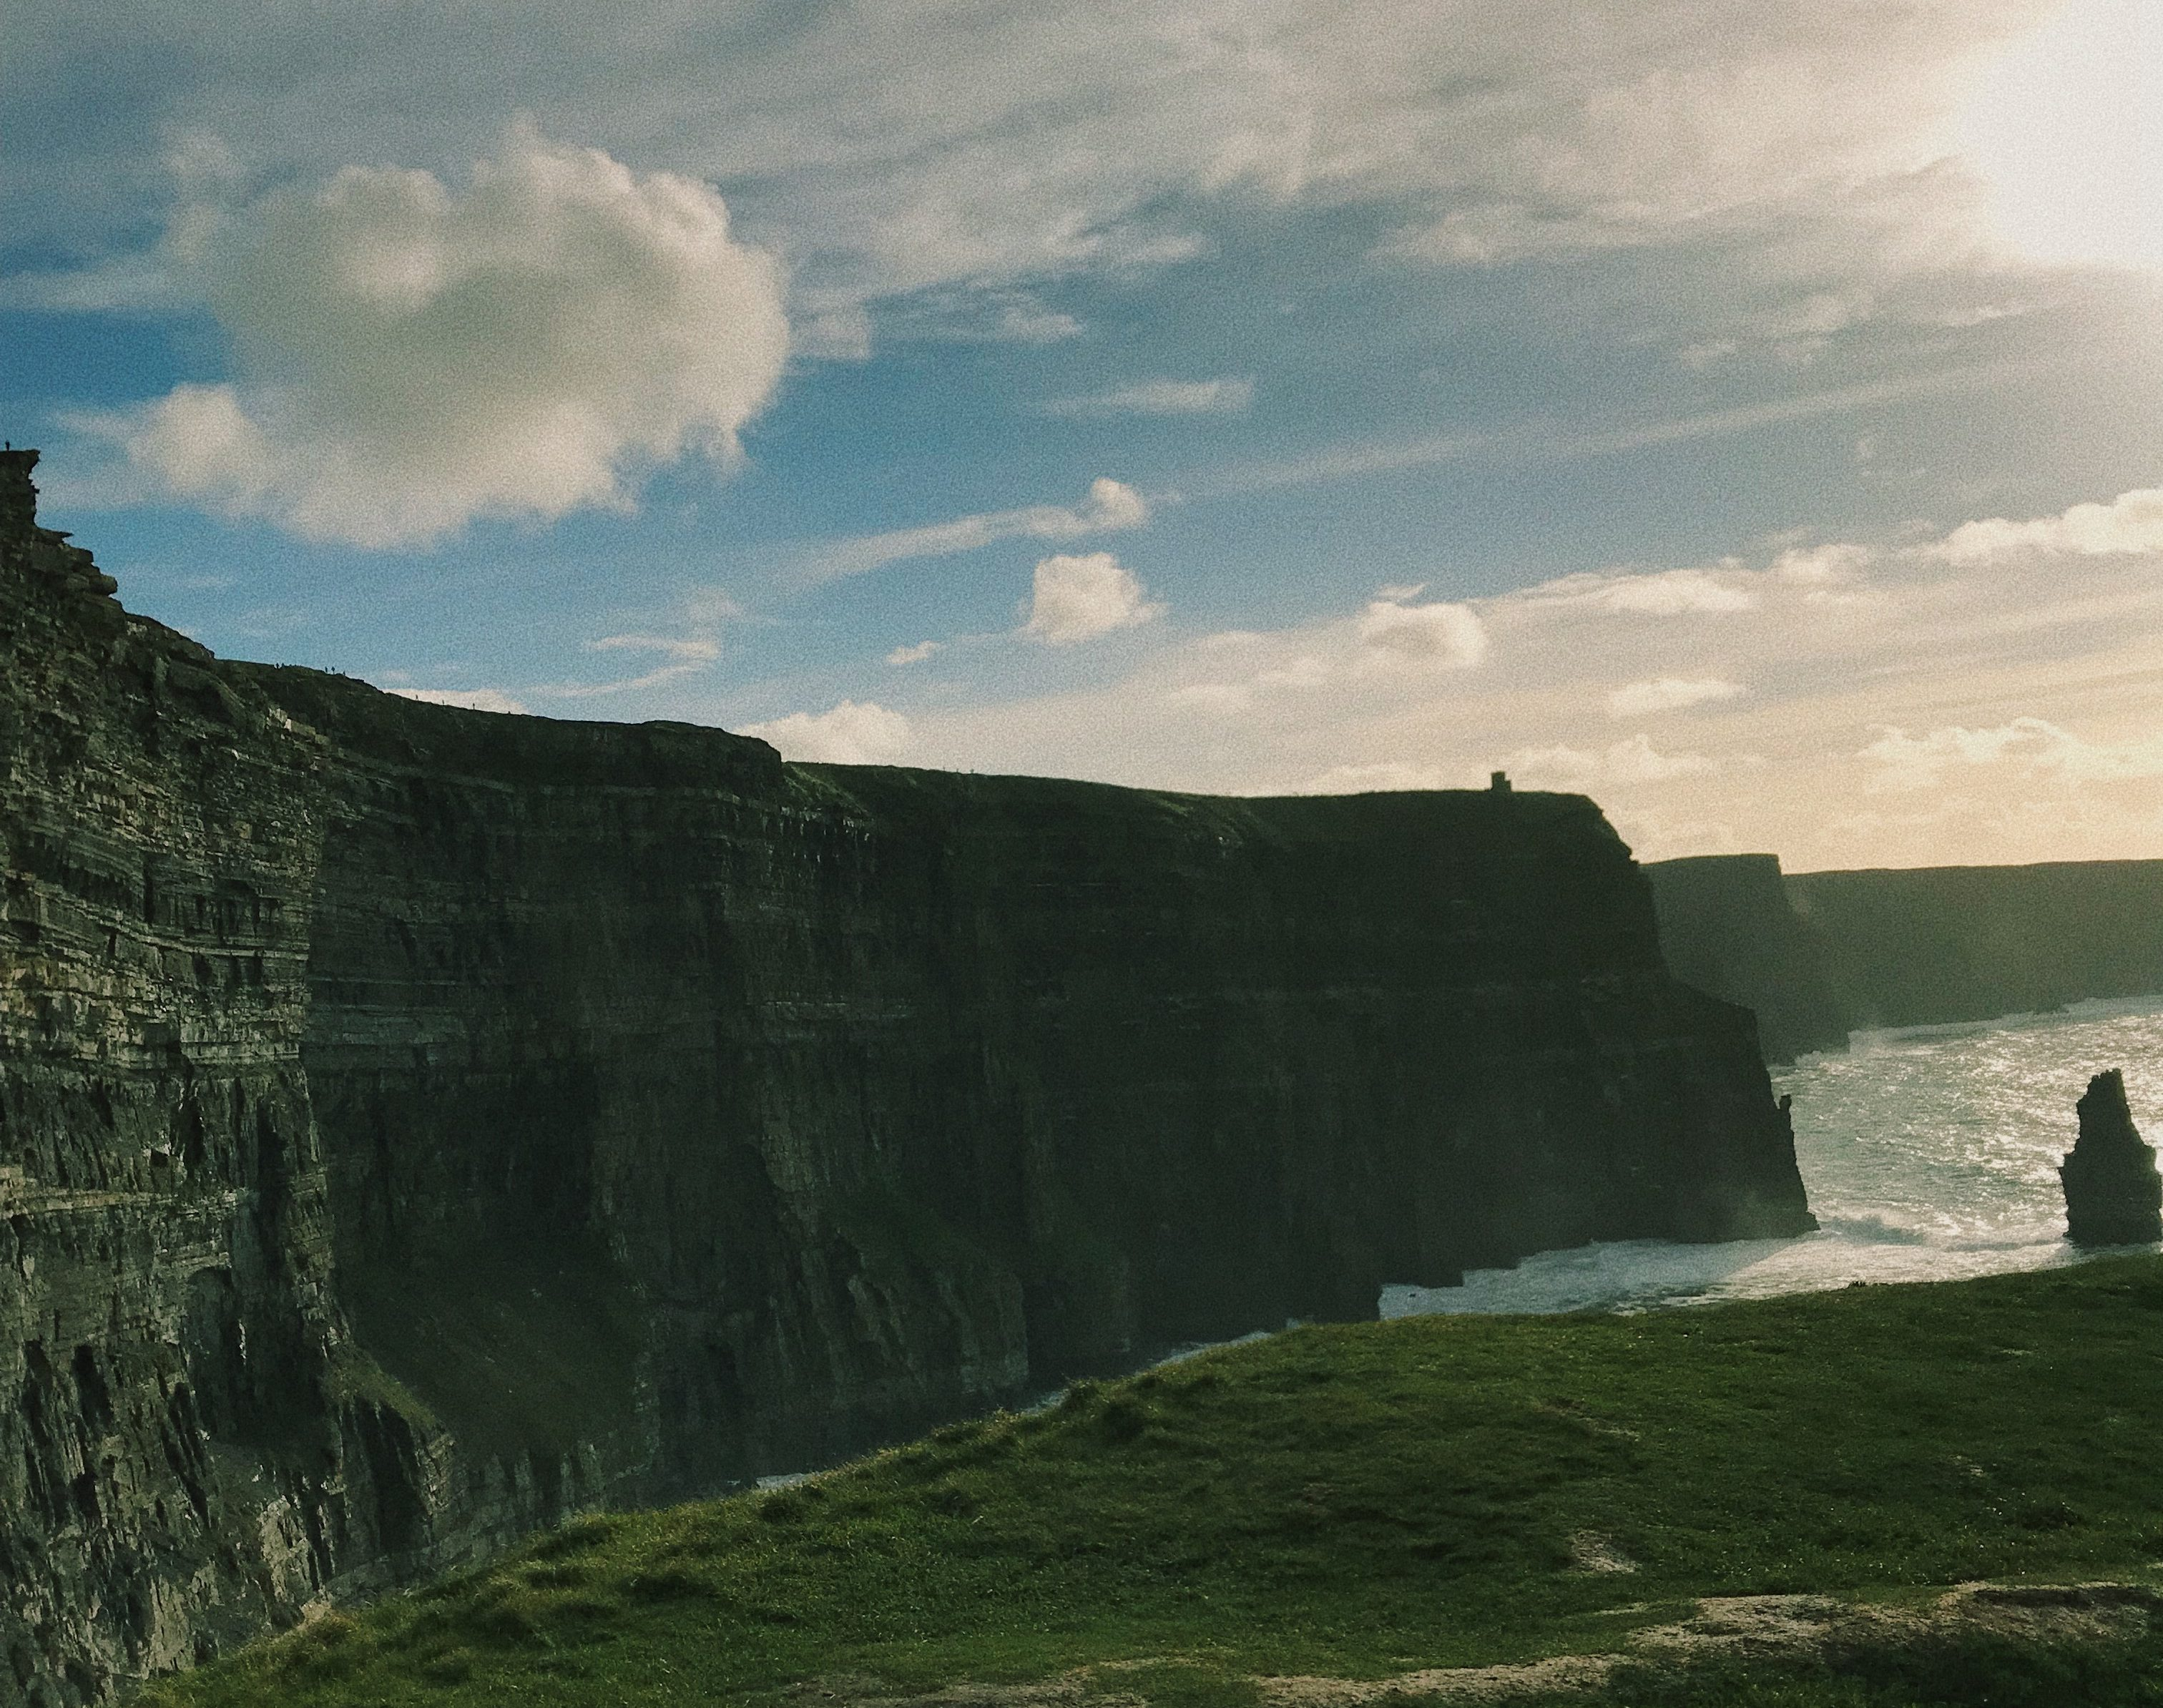 The sun shining on the Cliffs of Moher